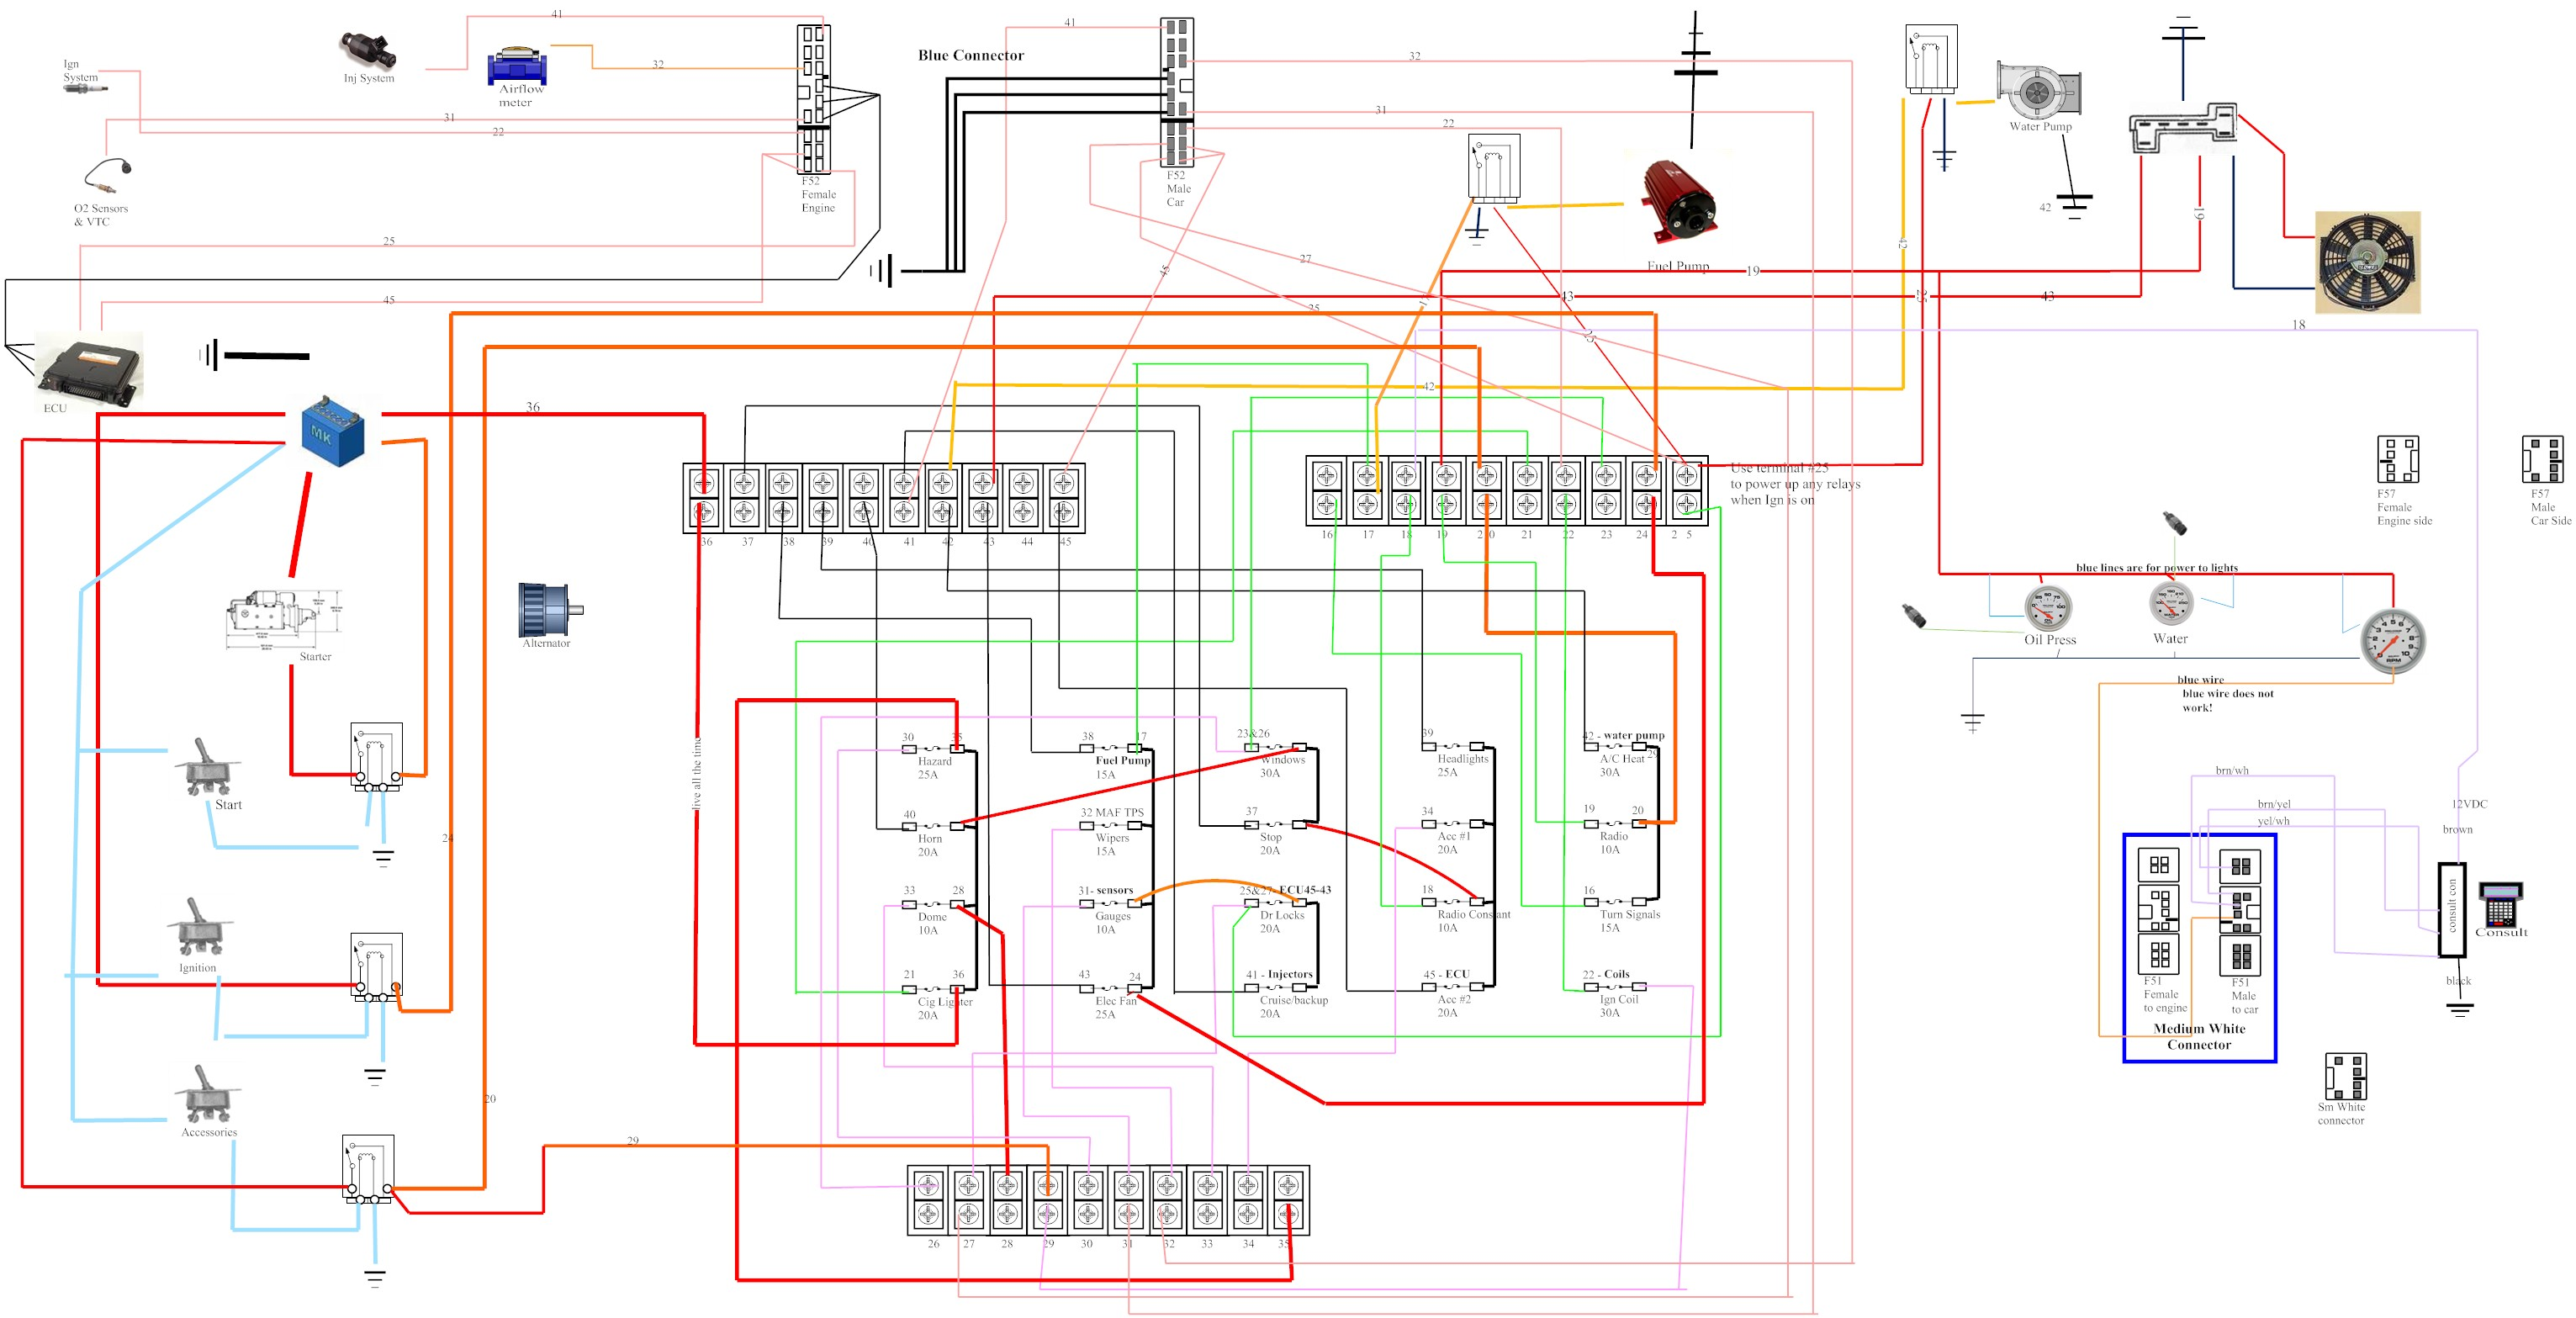 s fuel gauge wiring diagram simon and 2000 chevy blazer